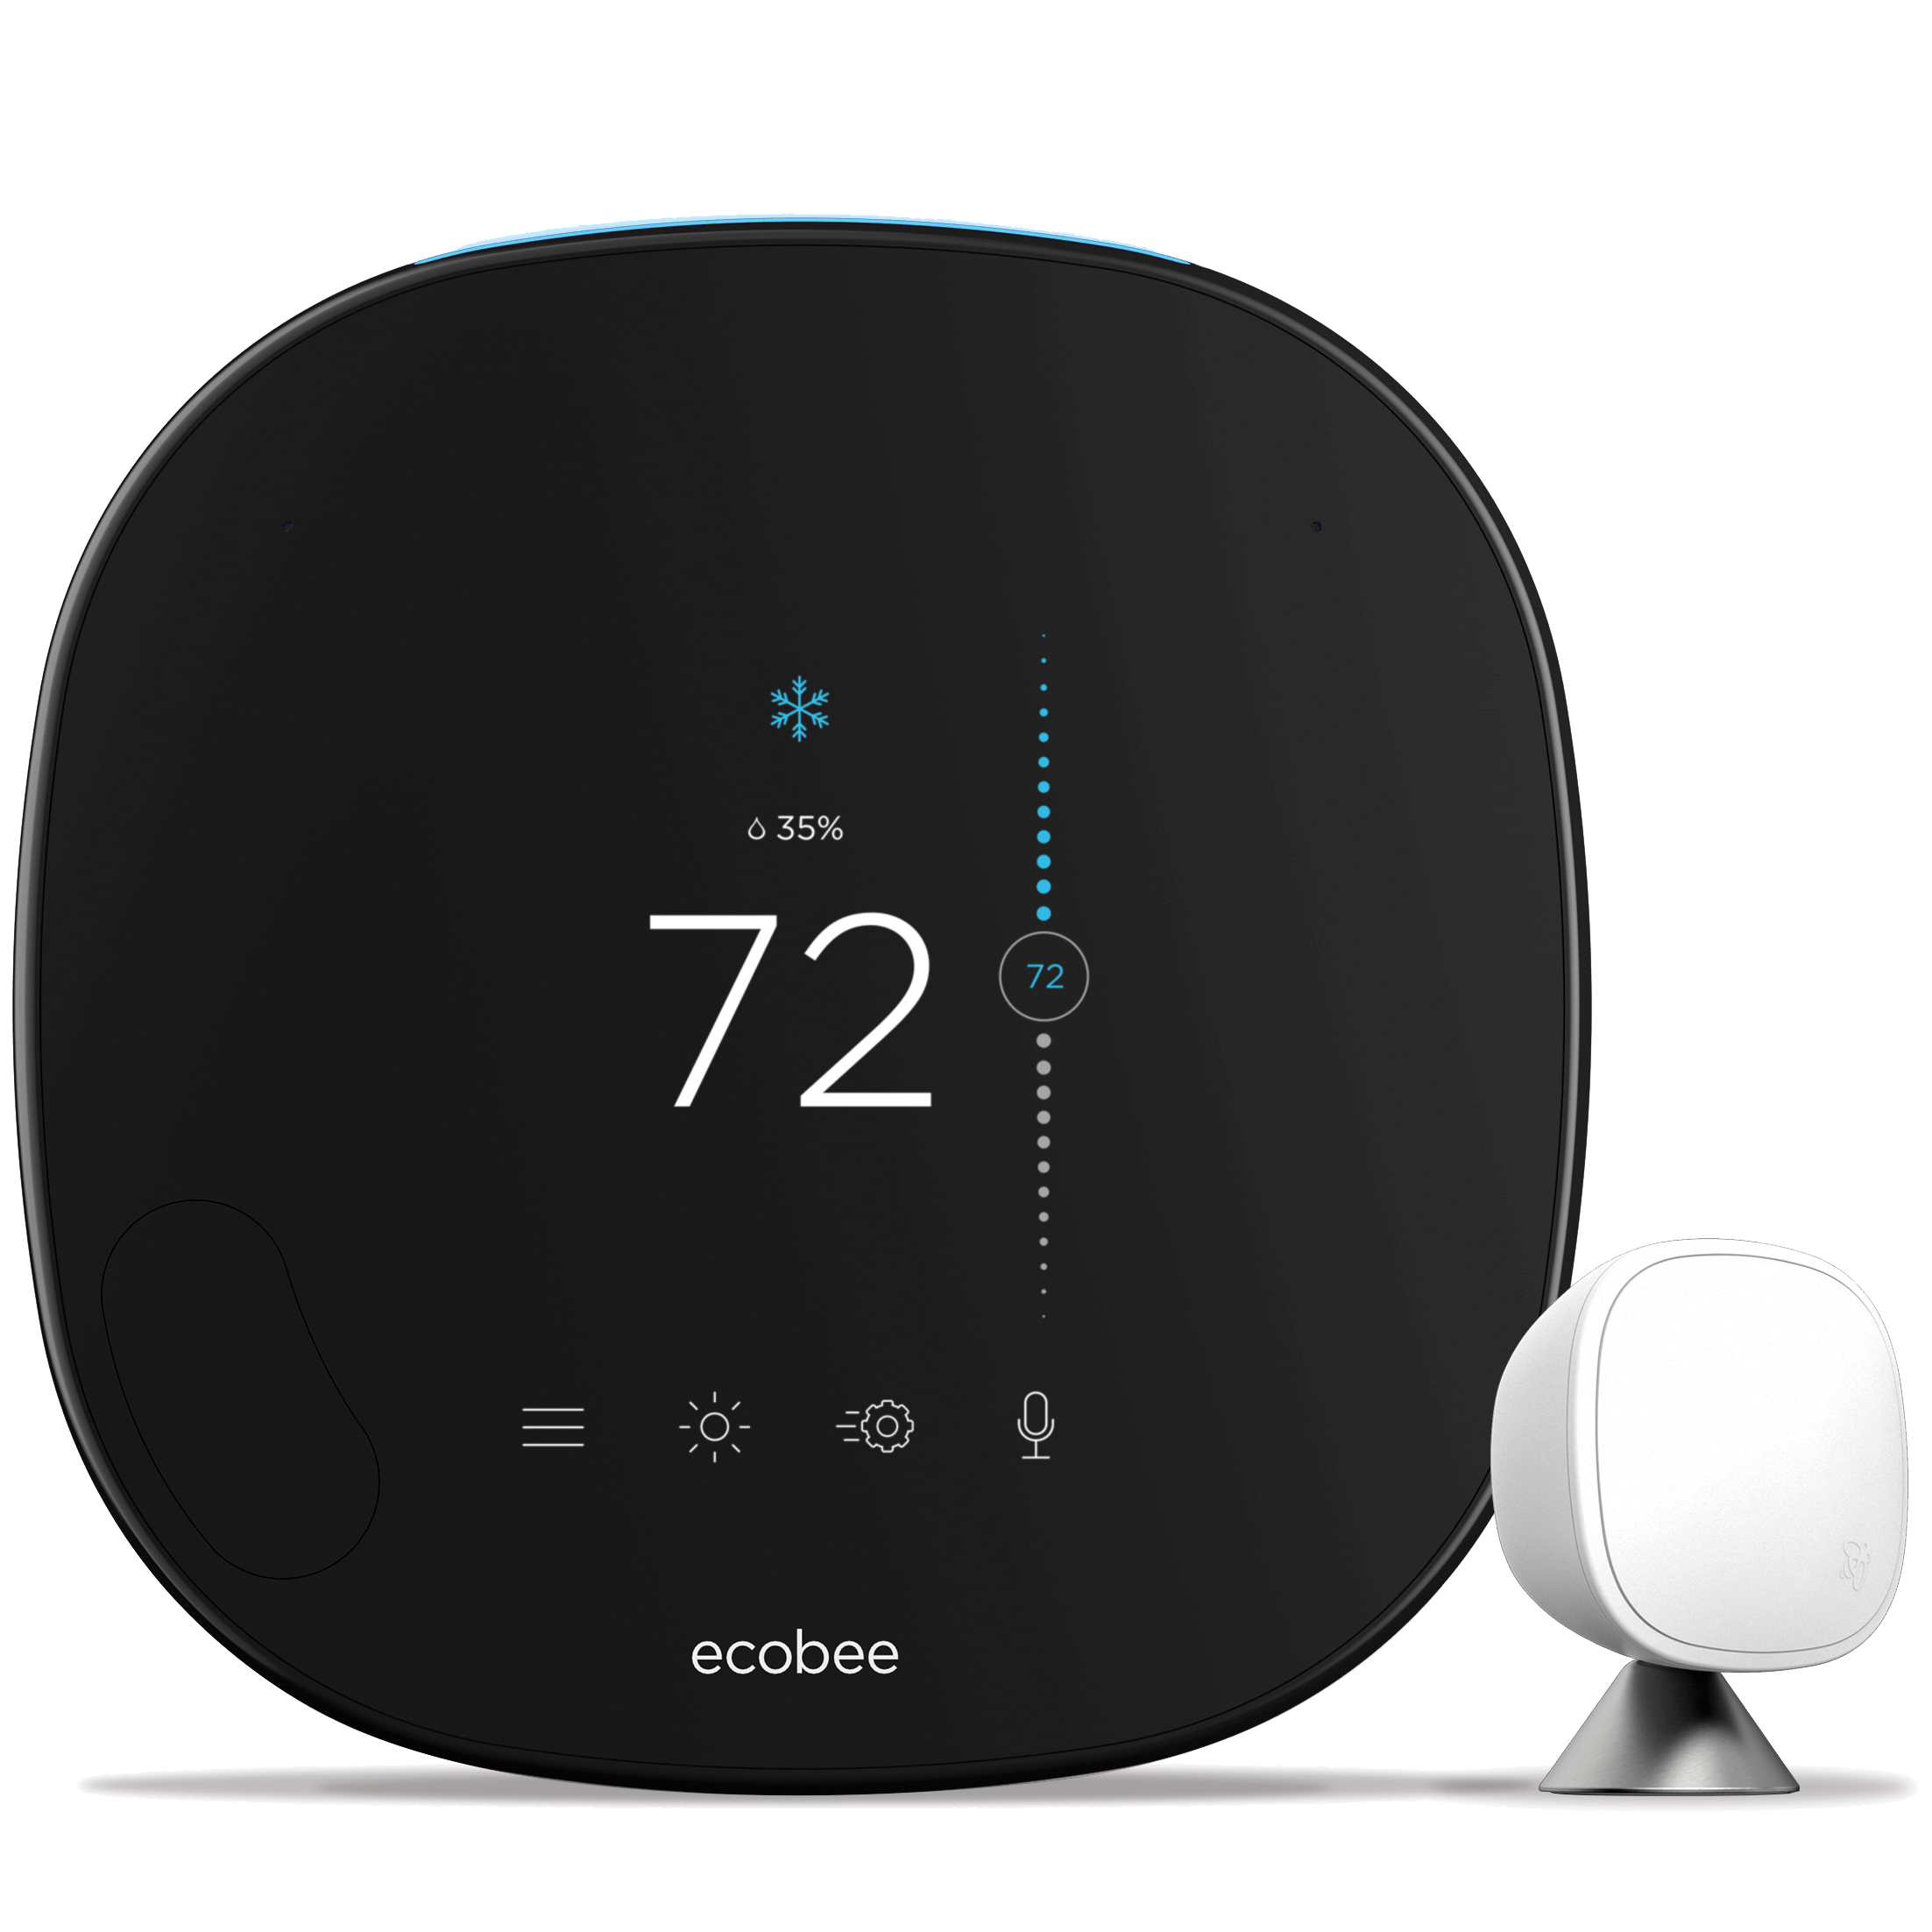 Ecobee Smartthermostat Pro With Voice Control